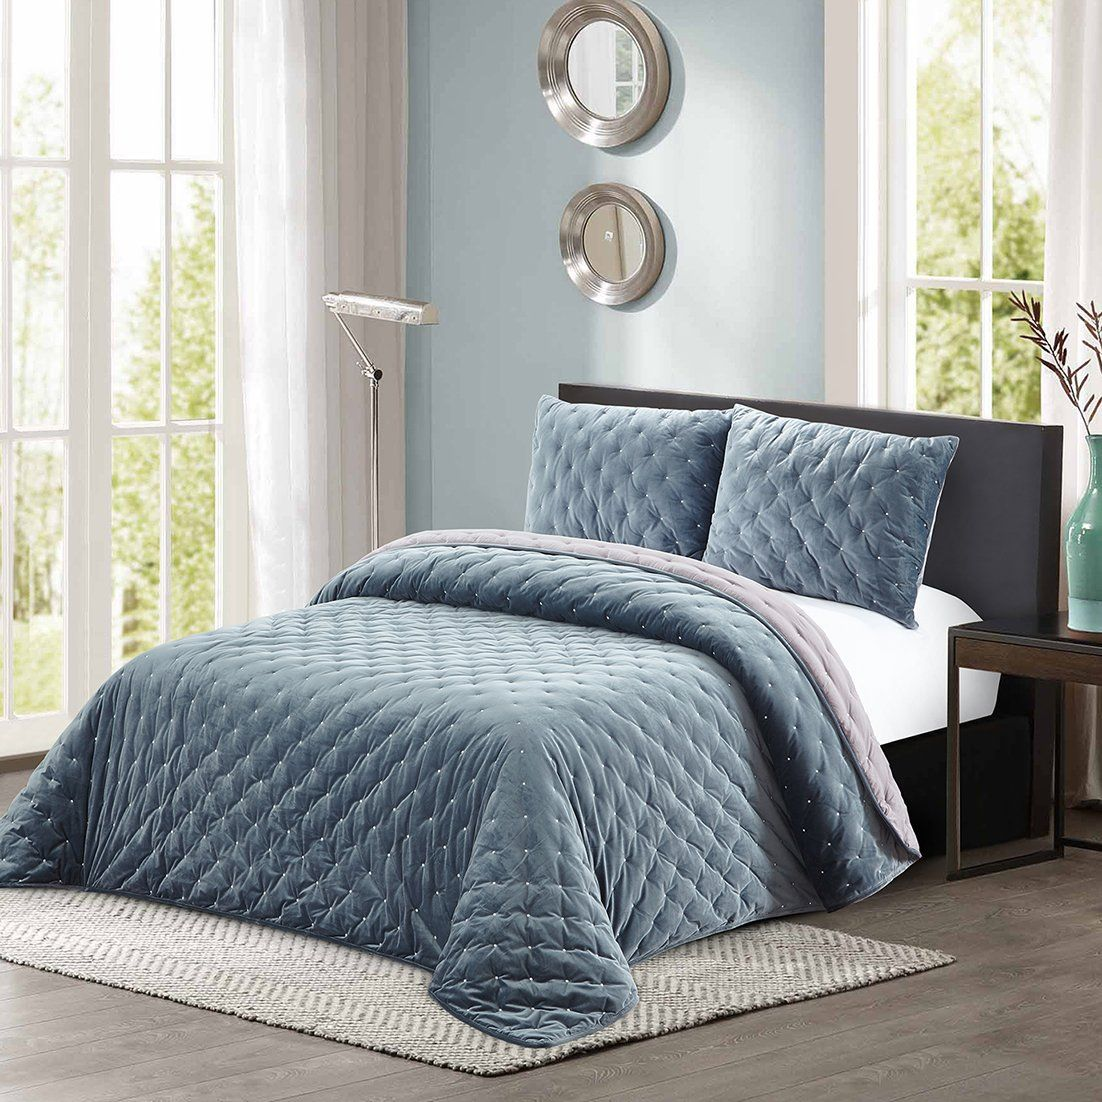 All American Collection New 3 Piece Thick Plush Velvet Coverlet Quilt Set Cal King Size Grey Blue Check Out Th Quilt Sets Quilt Sets Queen Cal King Size What is a coverlet quilt